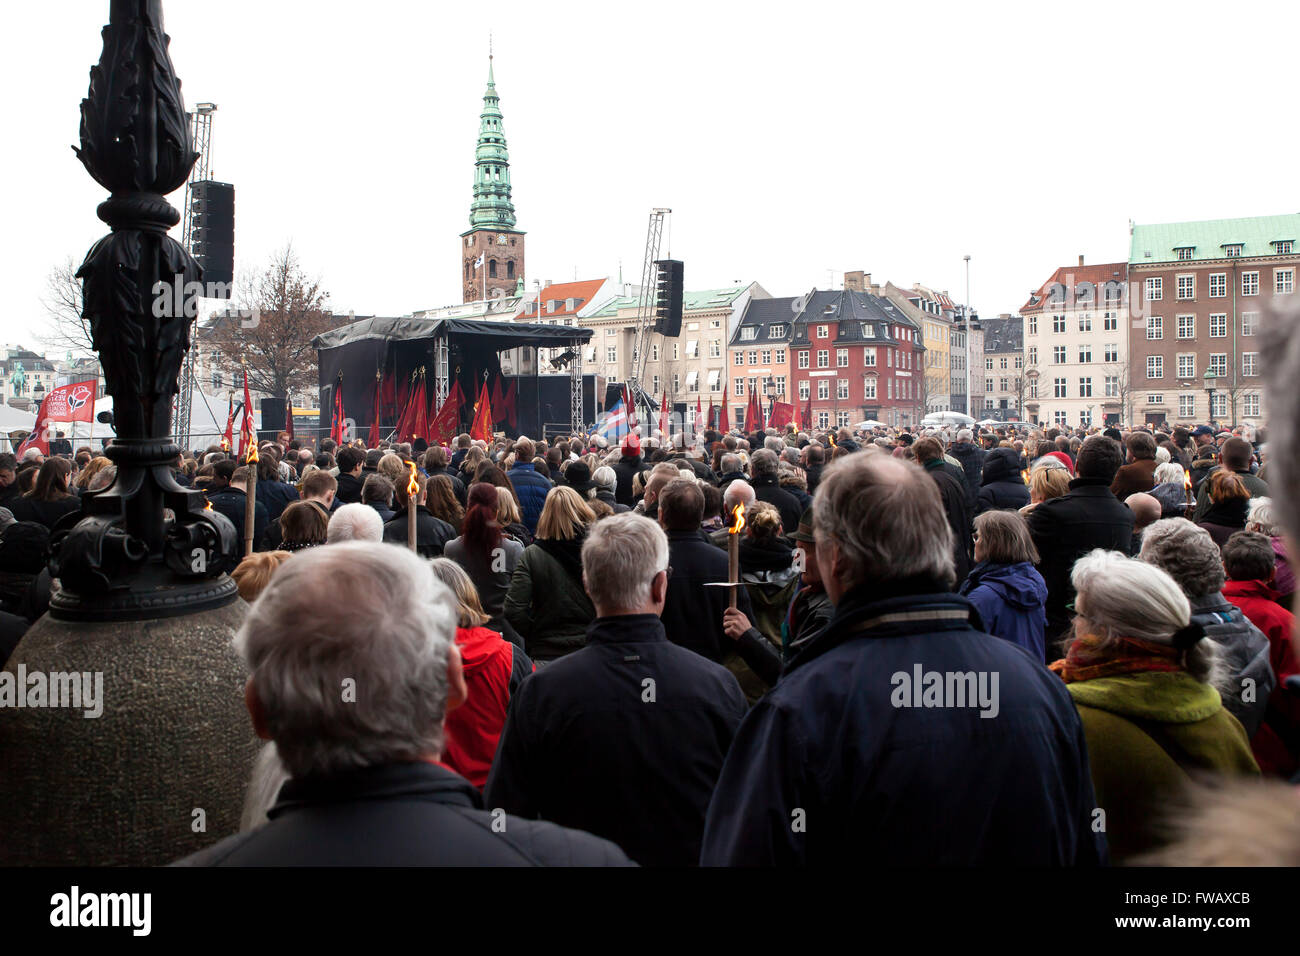 Copenhagen, Denmark, April 2nd, 2016. Many hundreds of people gather in front of the Danish Parliament, Christiansborg, - Stock Image